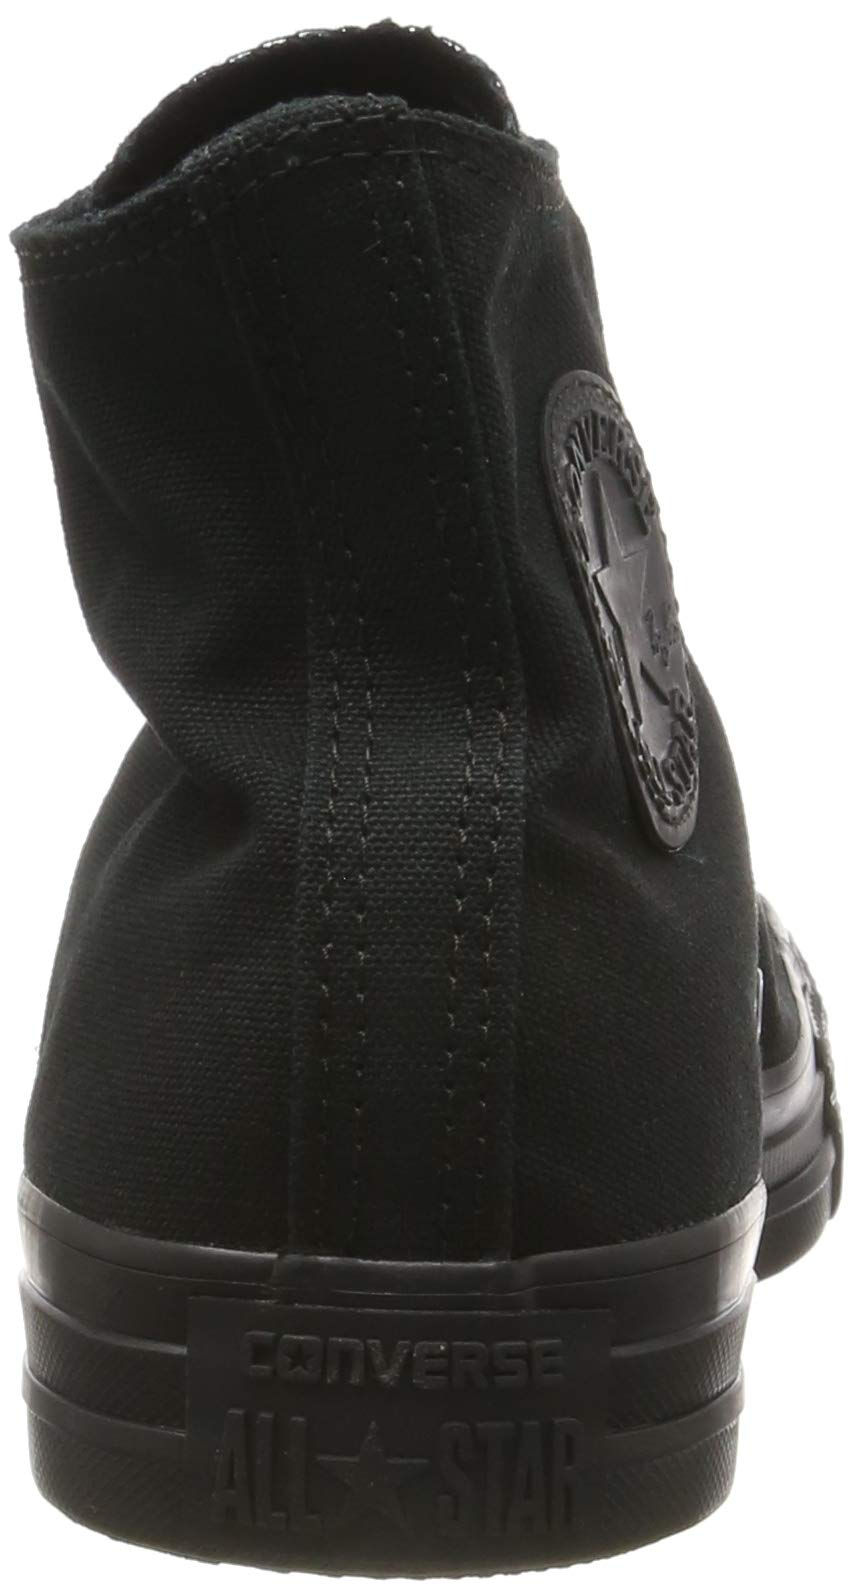 Converse M9160: Chuck Taylor All Star High Top Unisex Black White Sneakers by Converse (Image #2)